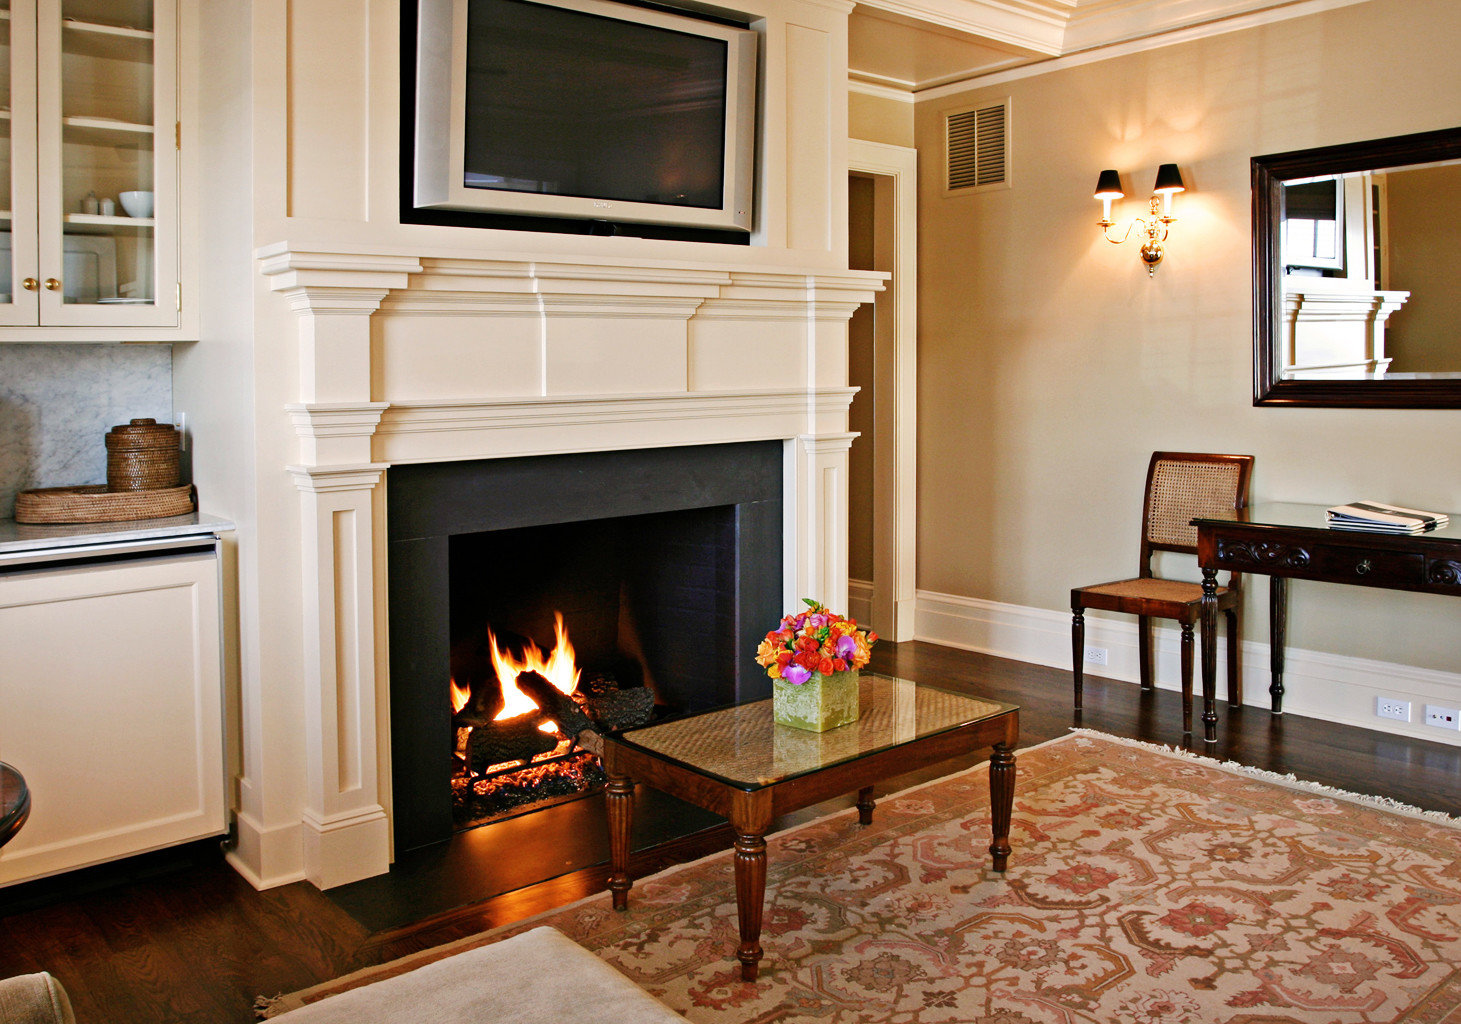 Classic Elegant Fireplace Luxury Suite Waterfront property living room fire home hardwood hearth cuisine classique cottage cabinetry wood flooring Kitchen flooring flat